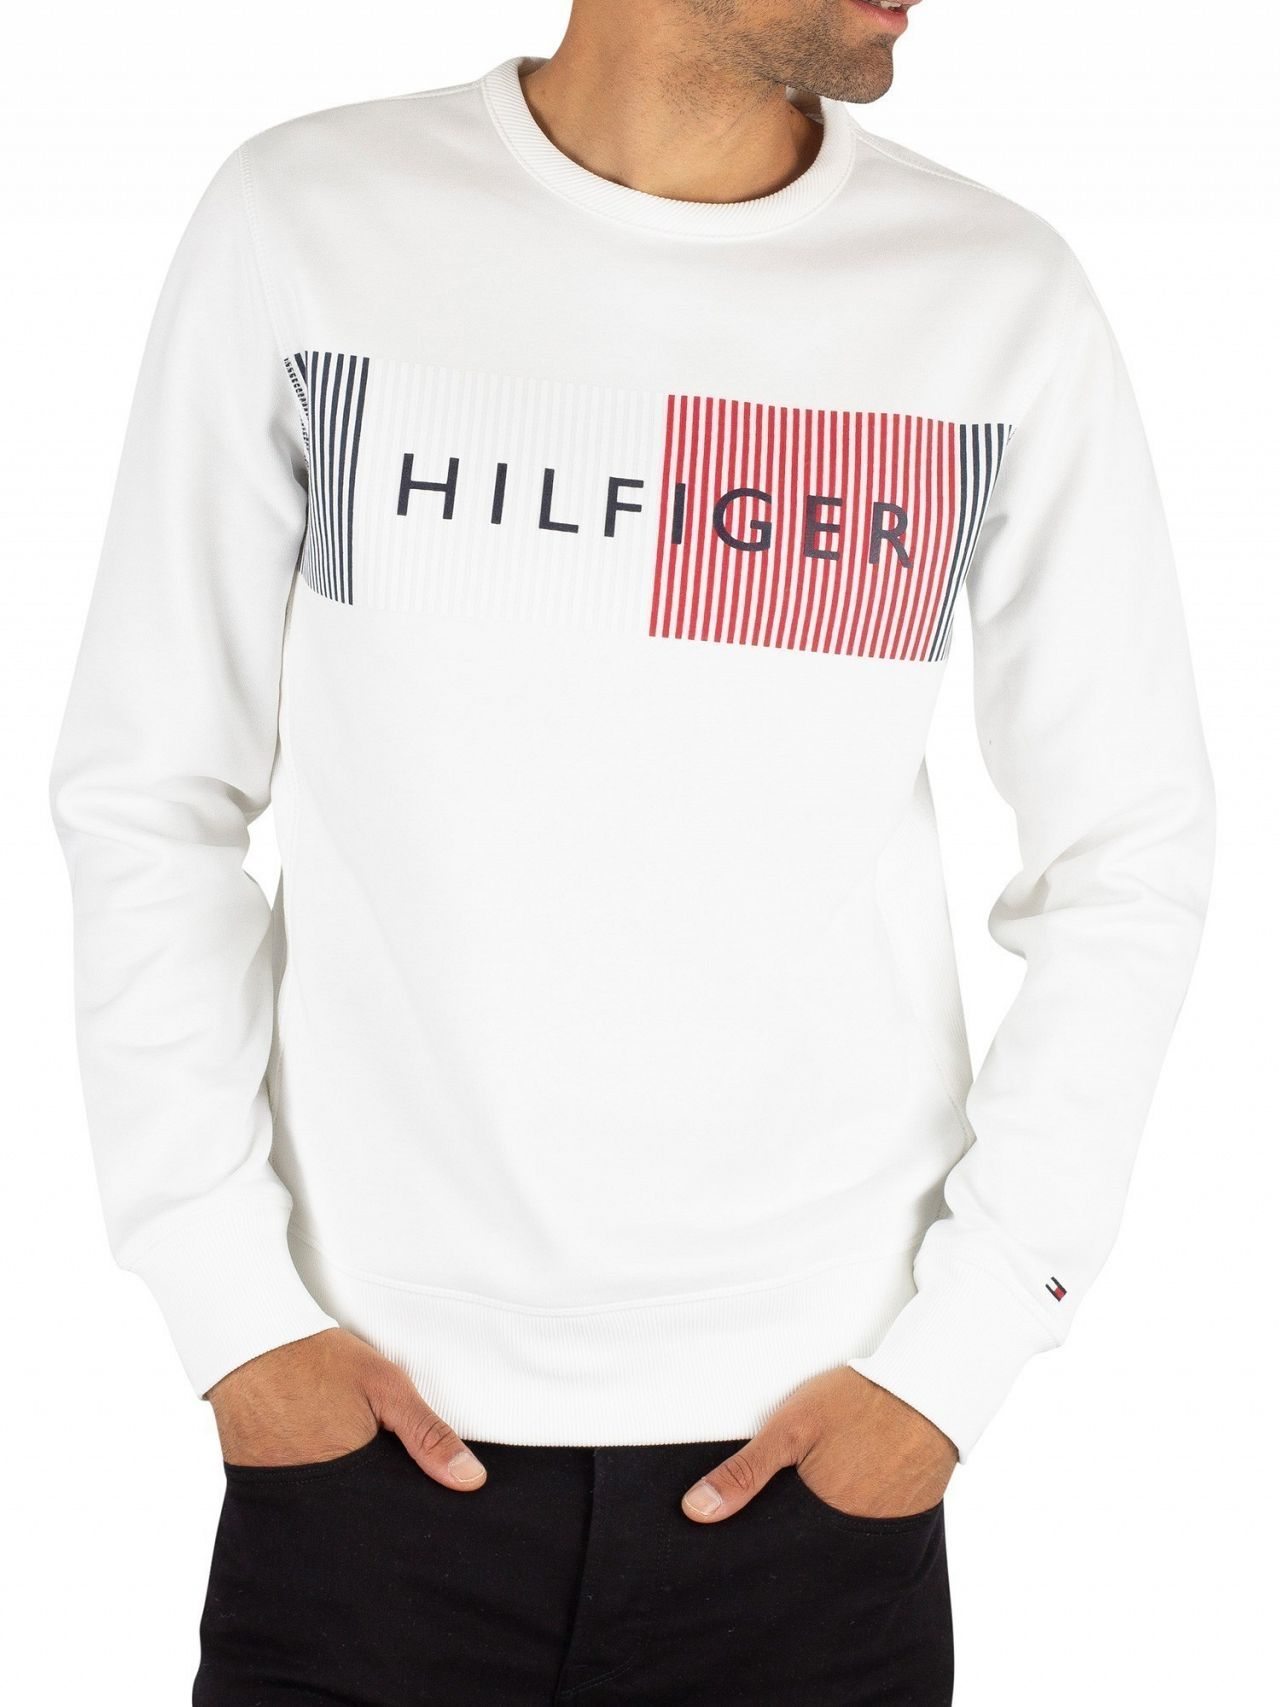 4c10b29e Tommy Hilfiger Bright White Graphic Sweatshirt. Tap to expand